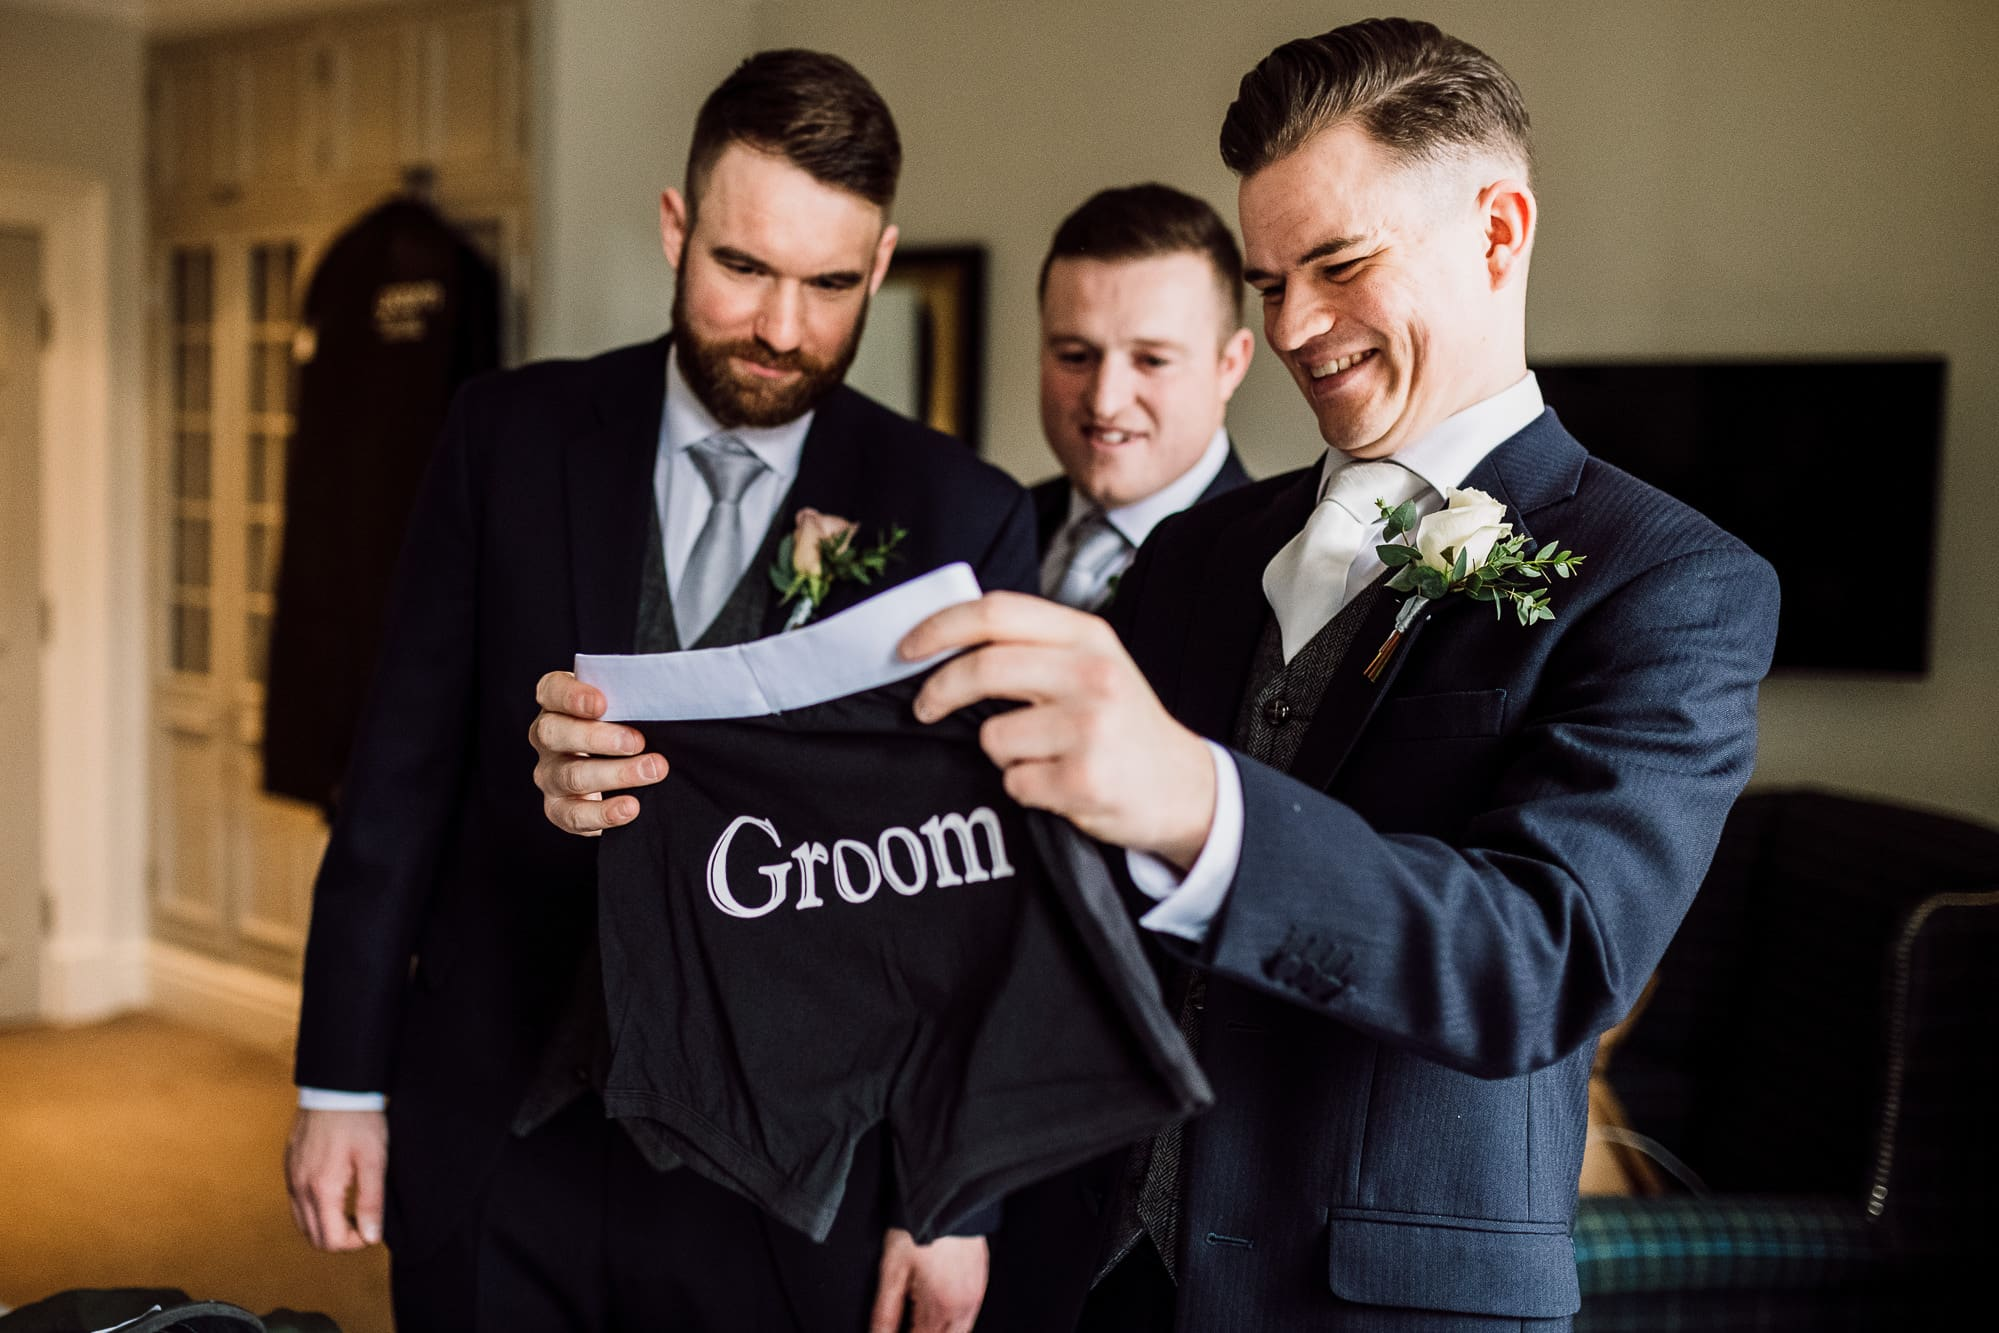 The groom opens up his gifts from his bride and is holding up some groom boxer shorts